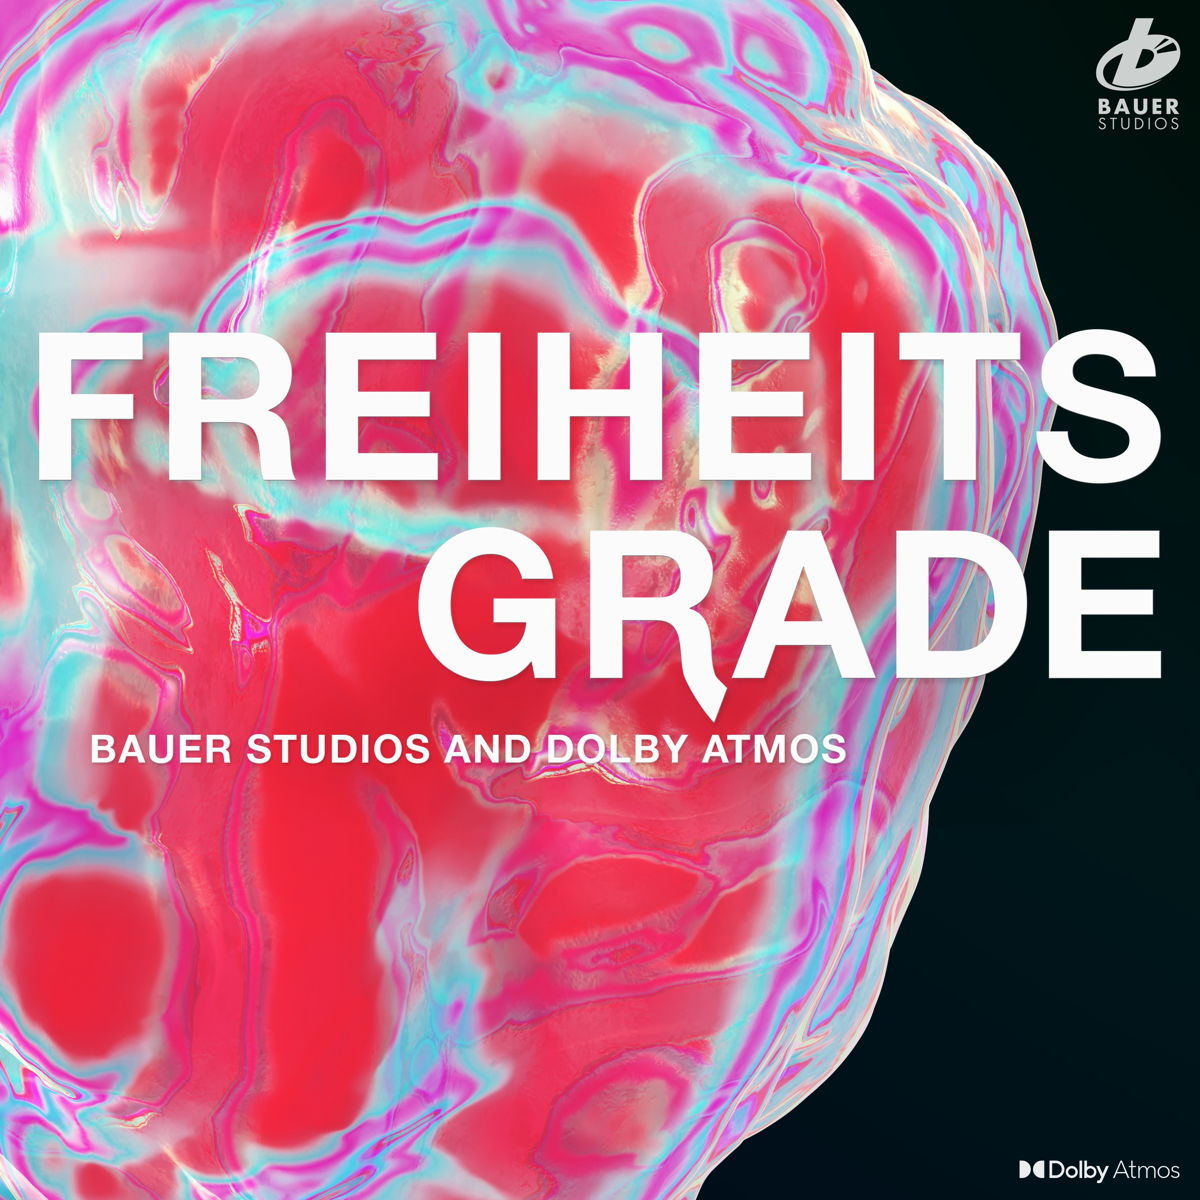 Freiheitsgrade:  acoustic music in many styles, remixed in Dolby Atmos